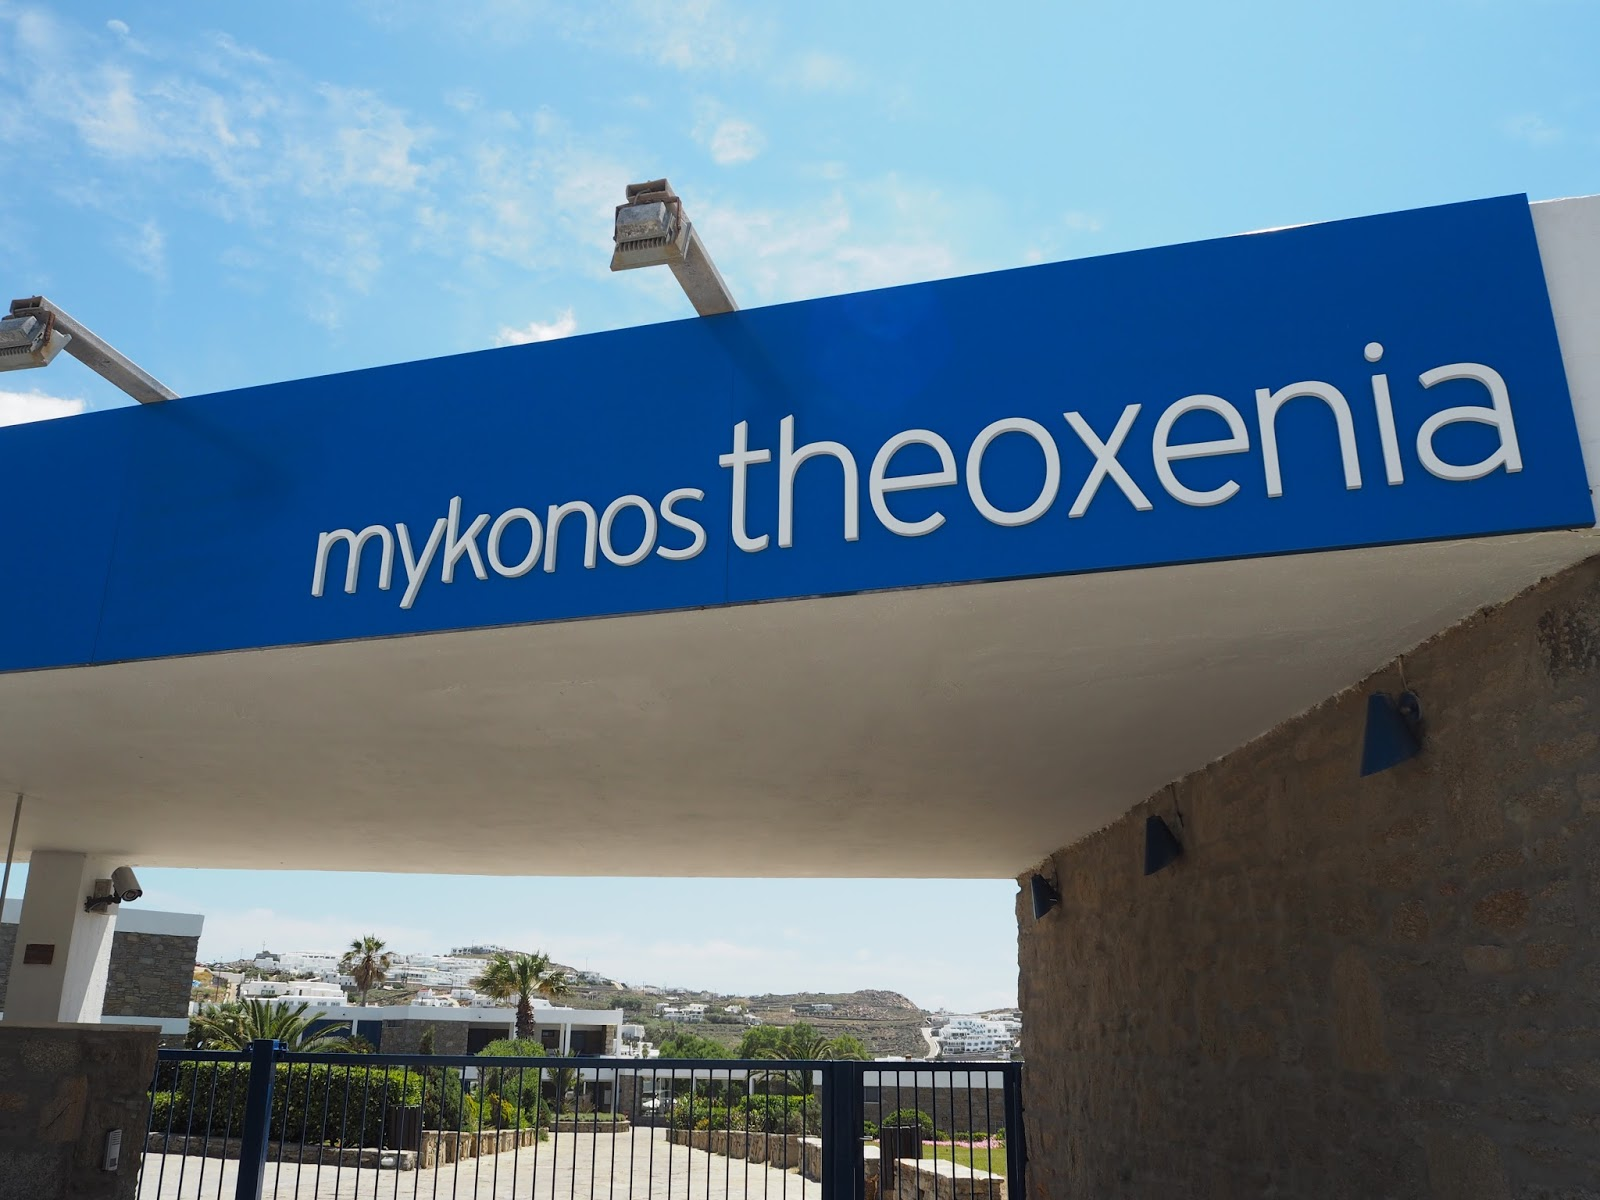 Zeena Xena Reviews Mykonos Theoxenia Hotel in Greece